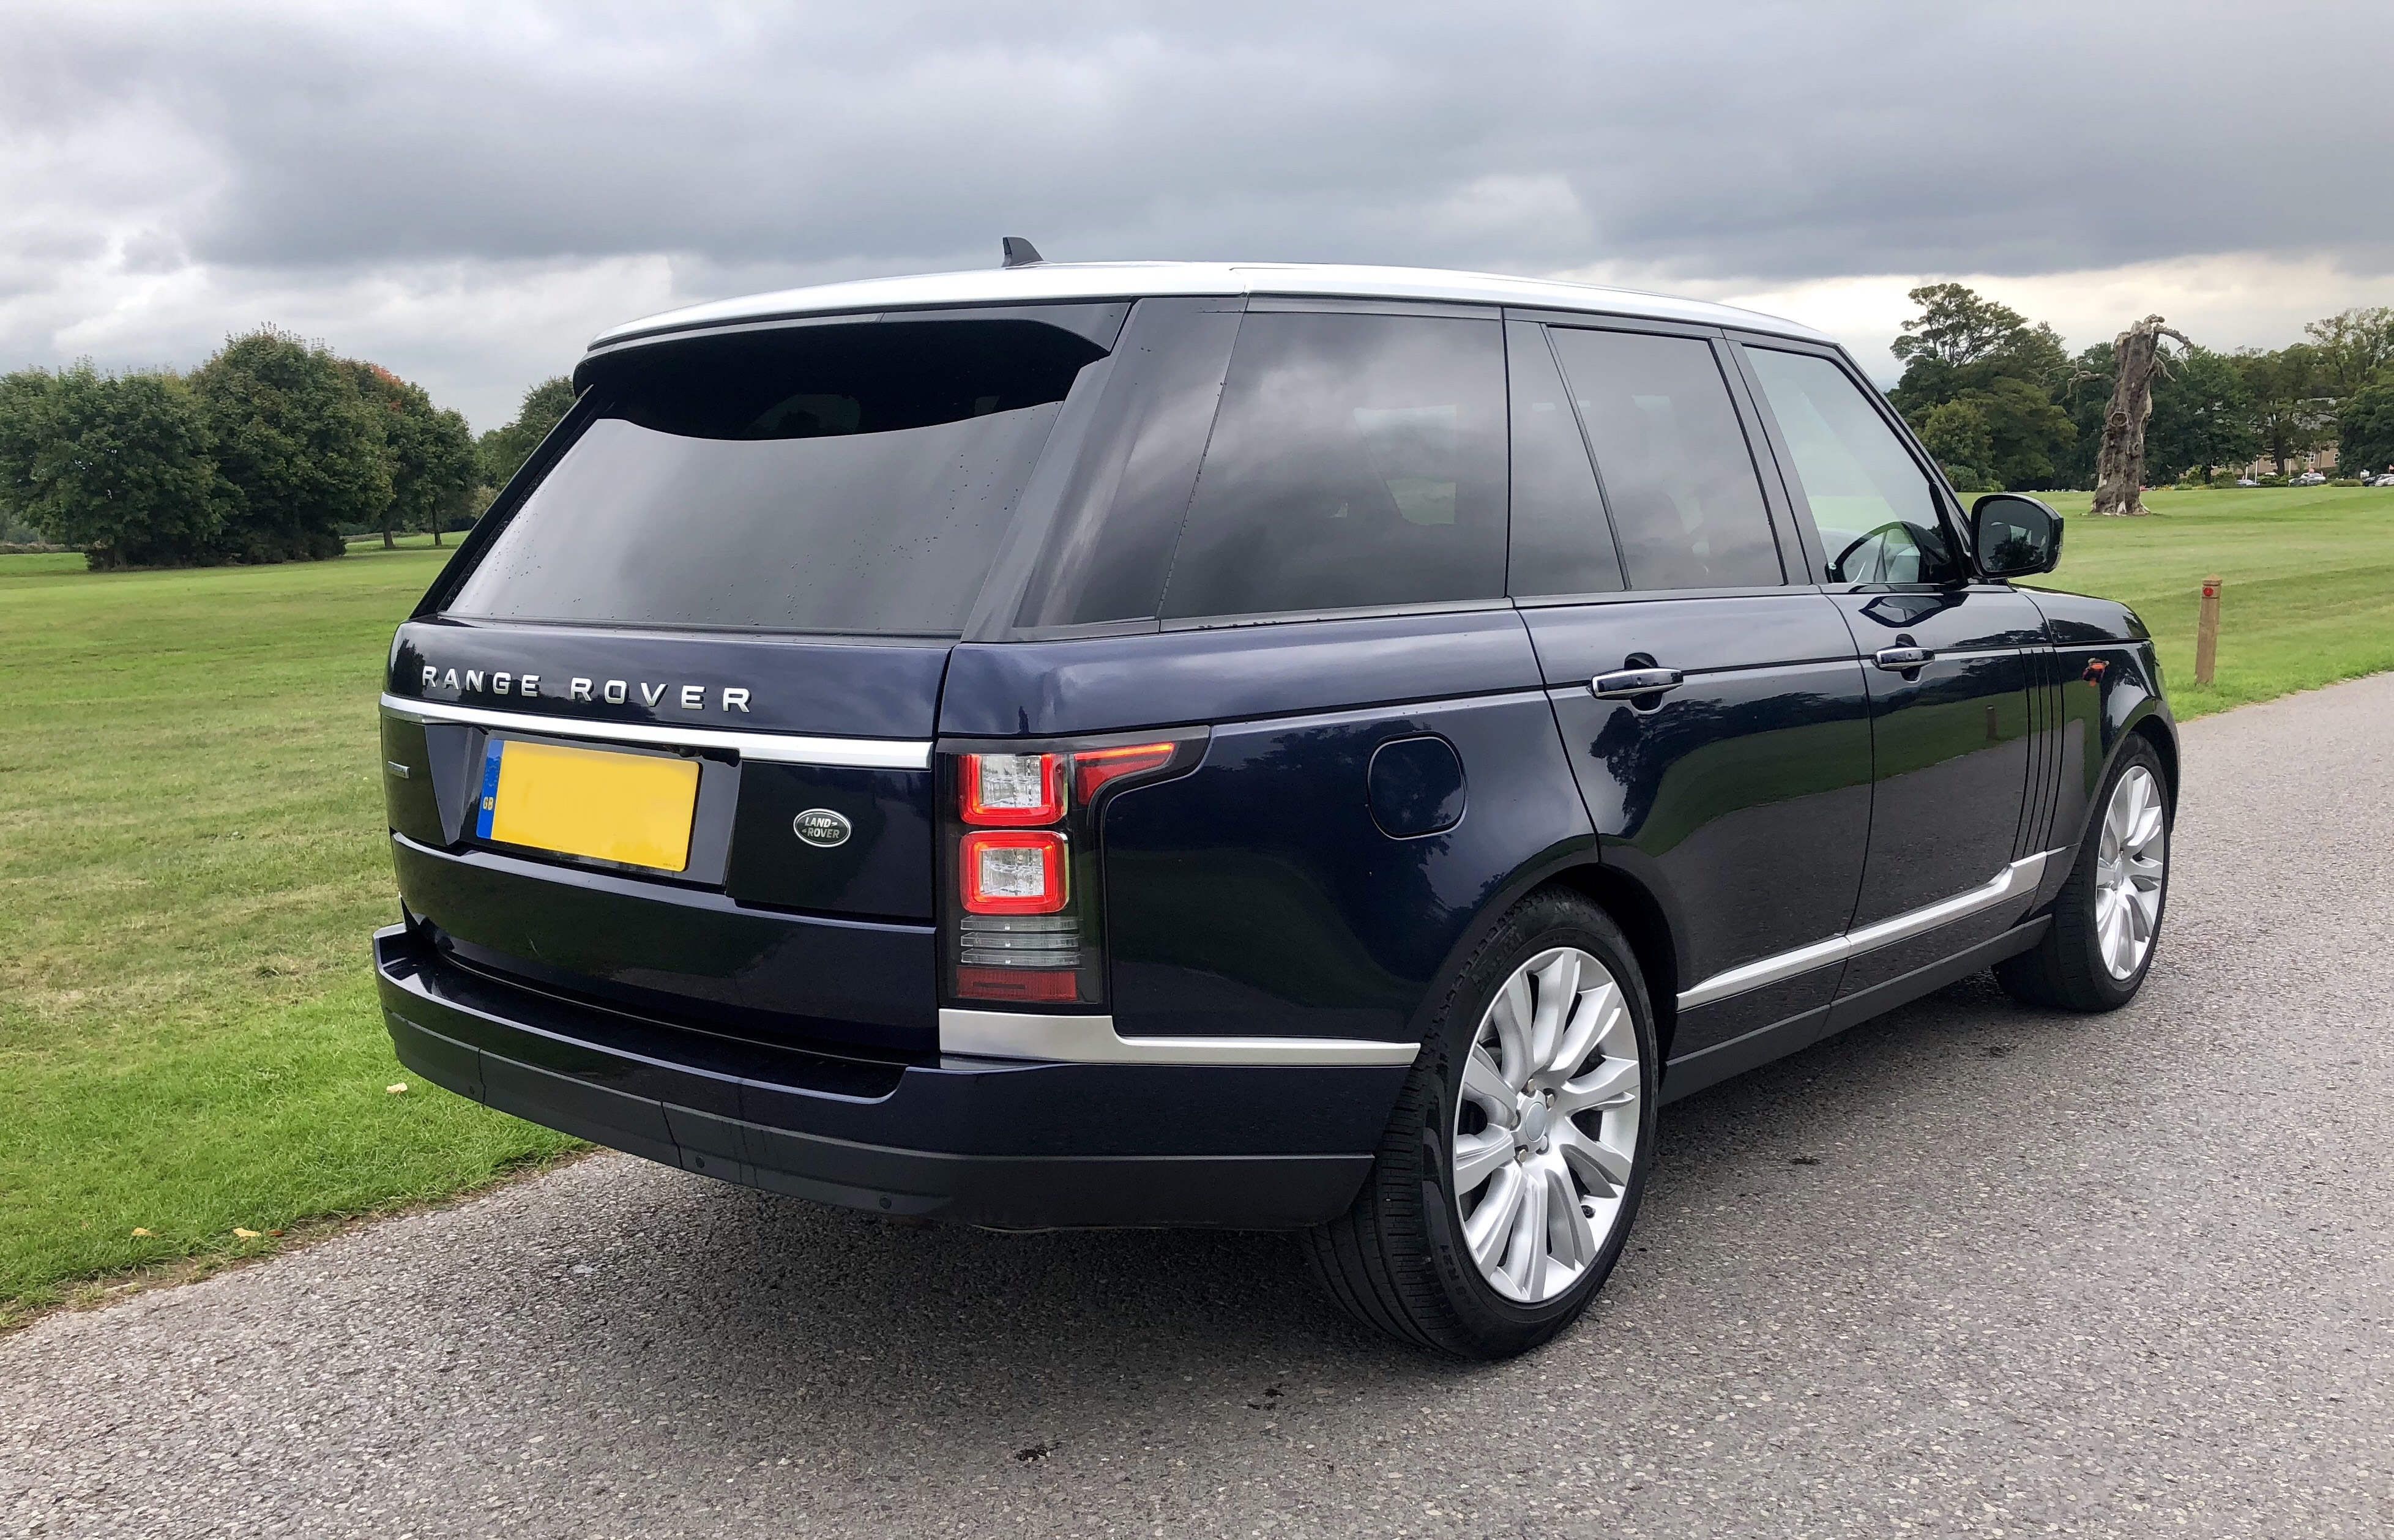 Red Carpet Cars   Luxury Wedding Car Hire North West   Range Rover